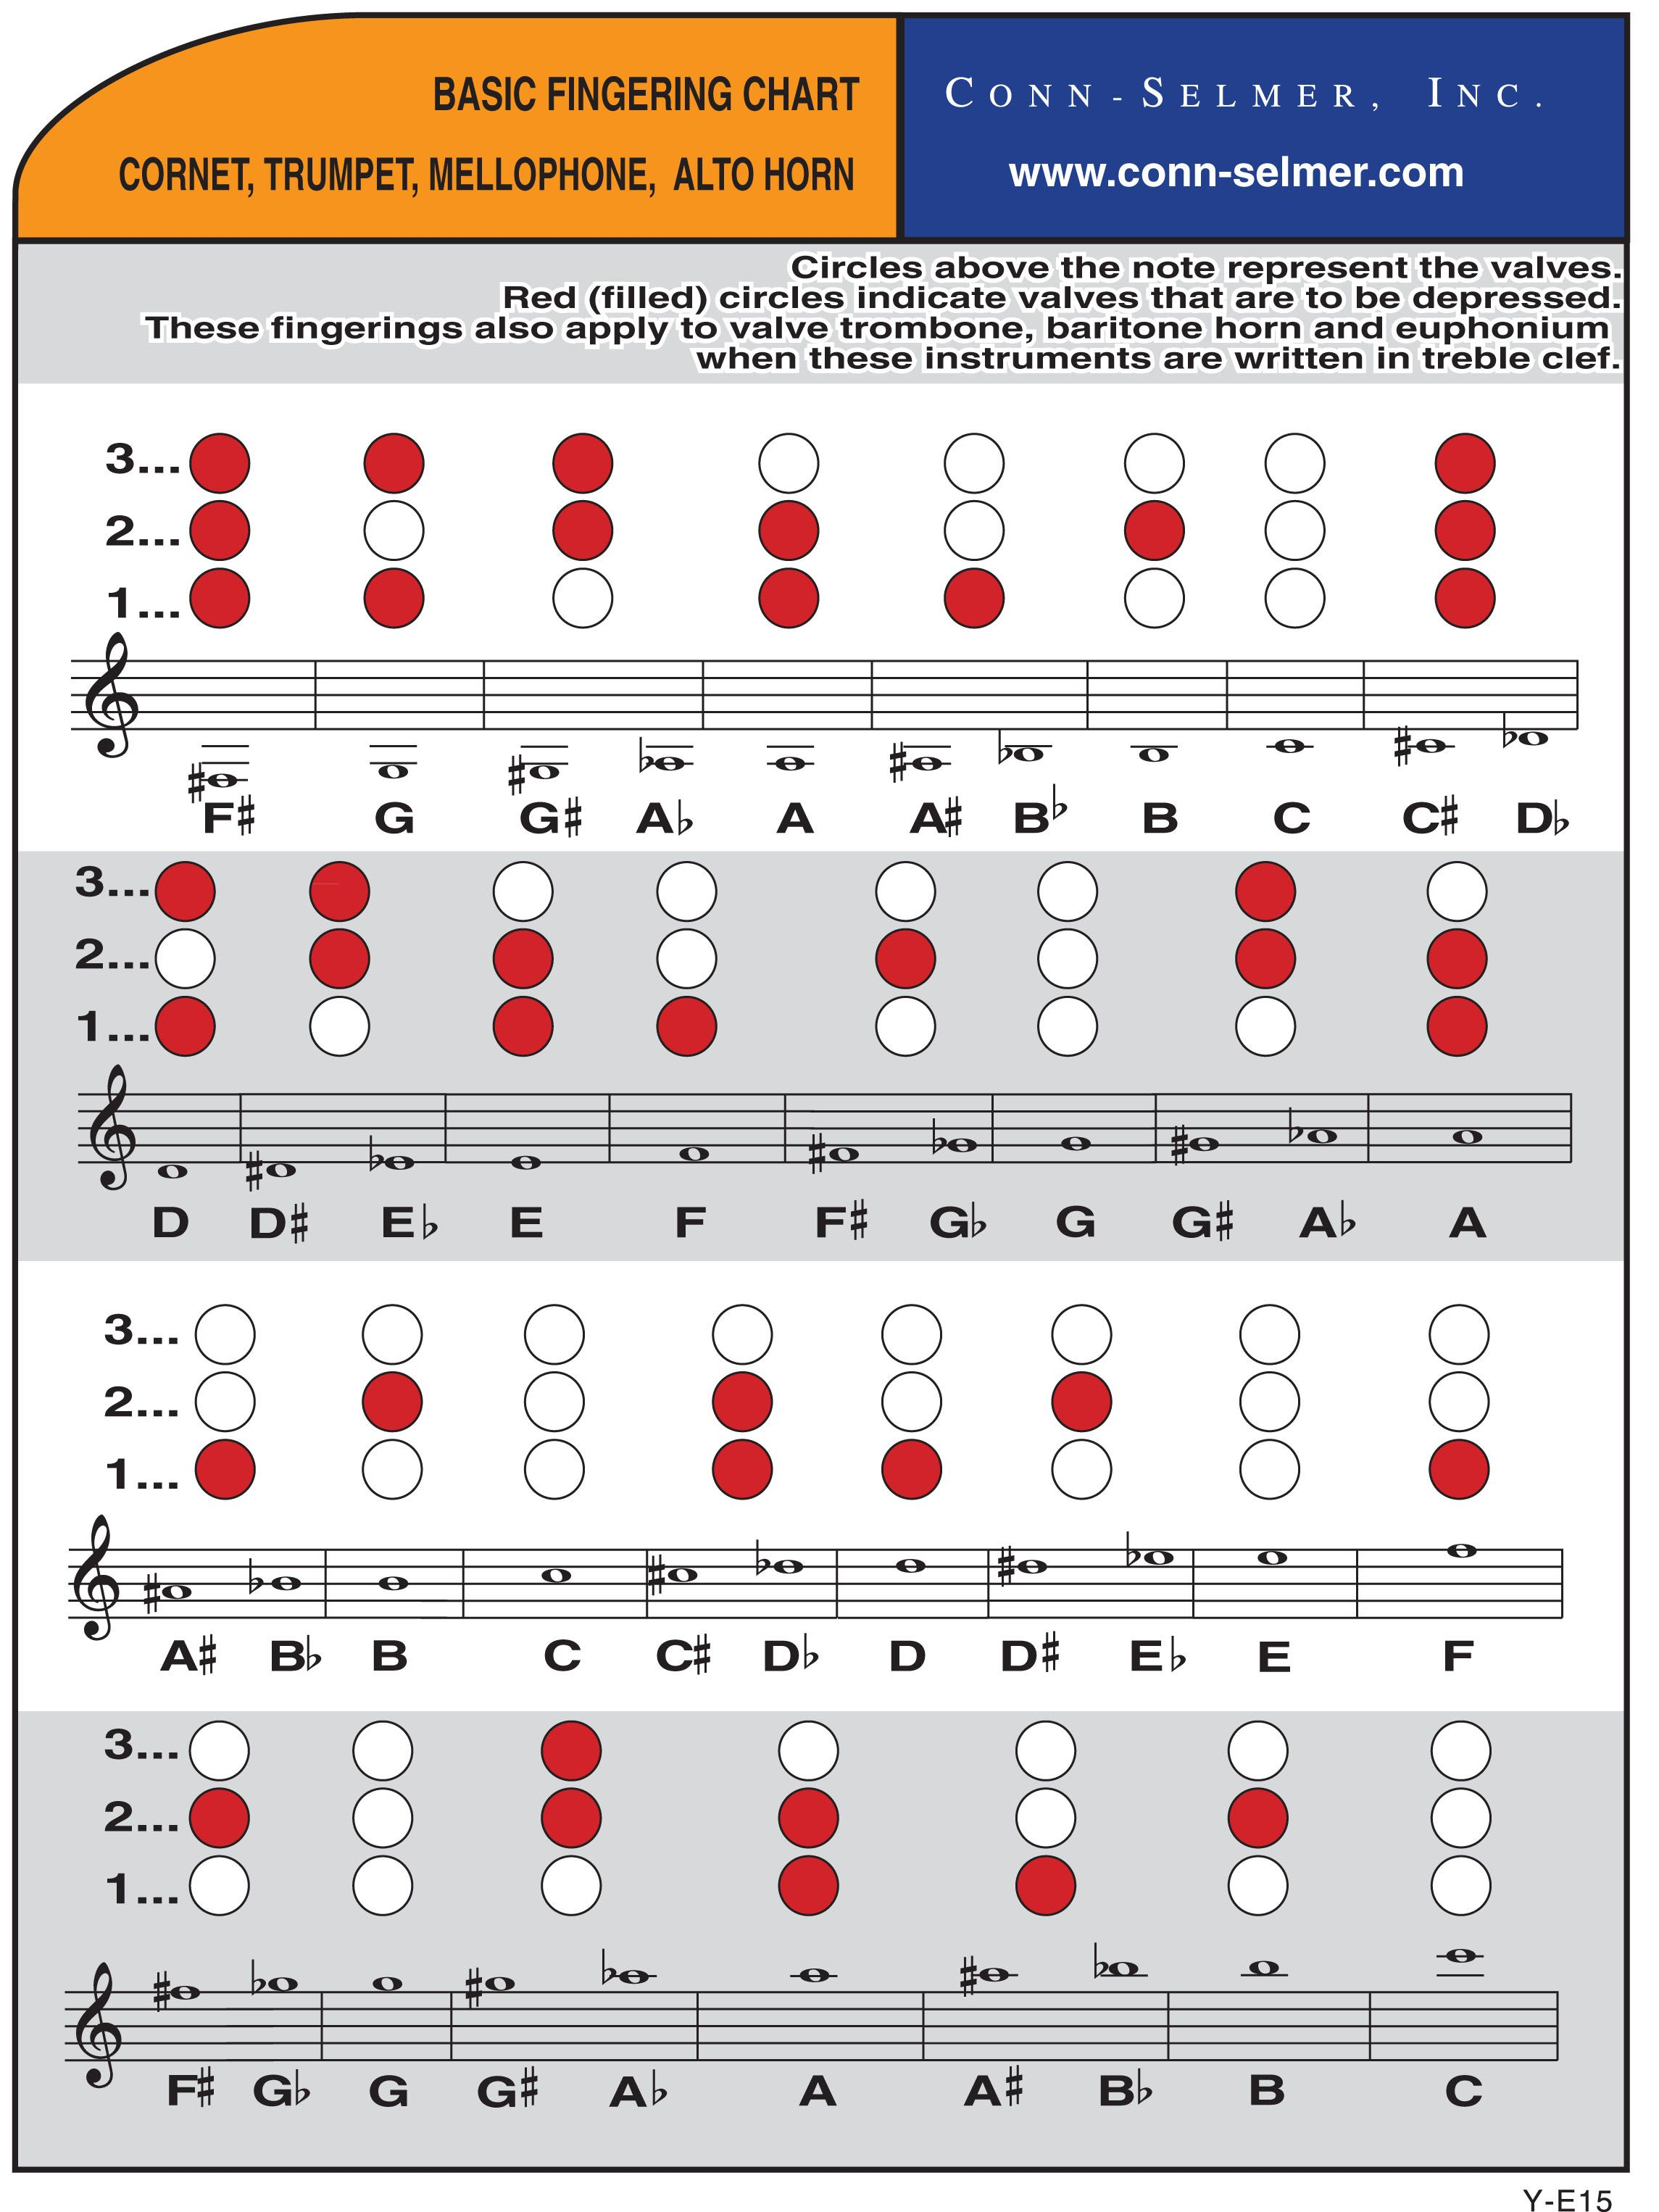 Fingering Charts for Trumpets and Cornets provided by Conn